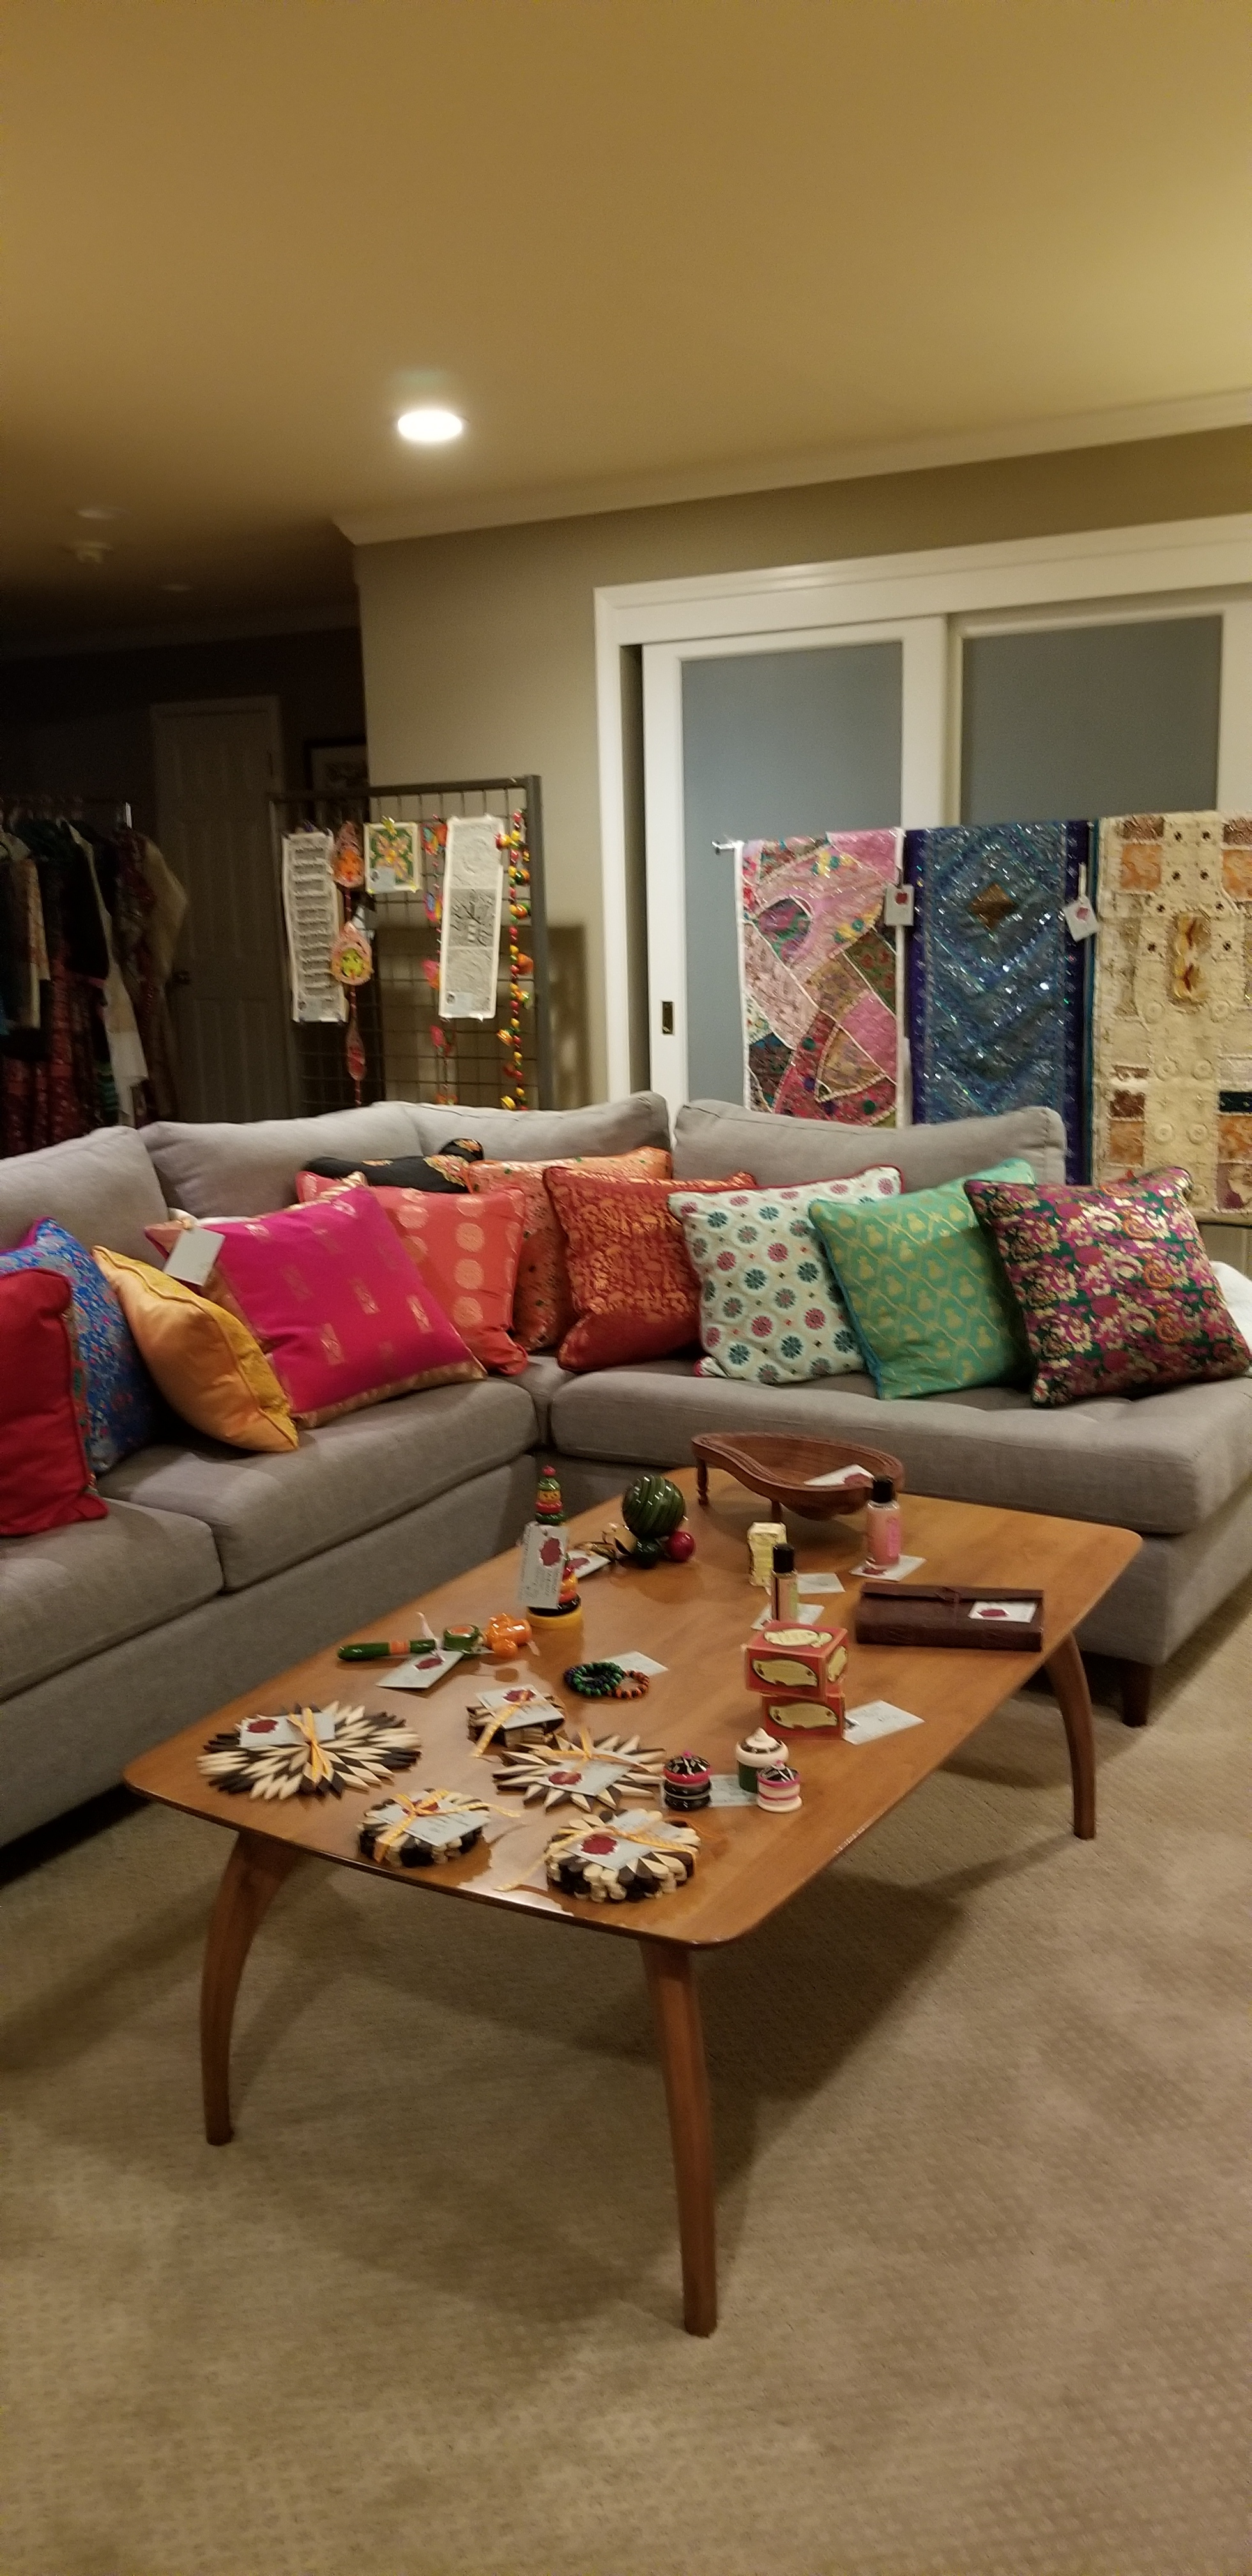 Pillows made from Indian silk